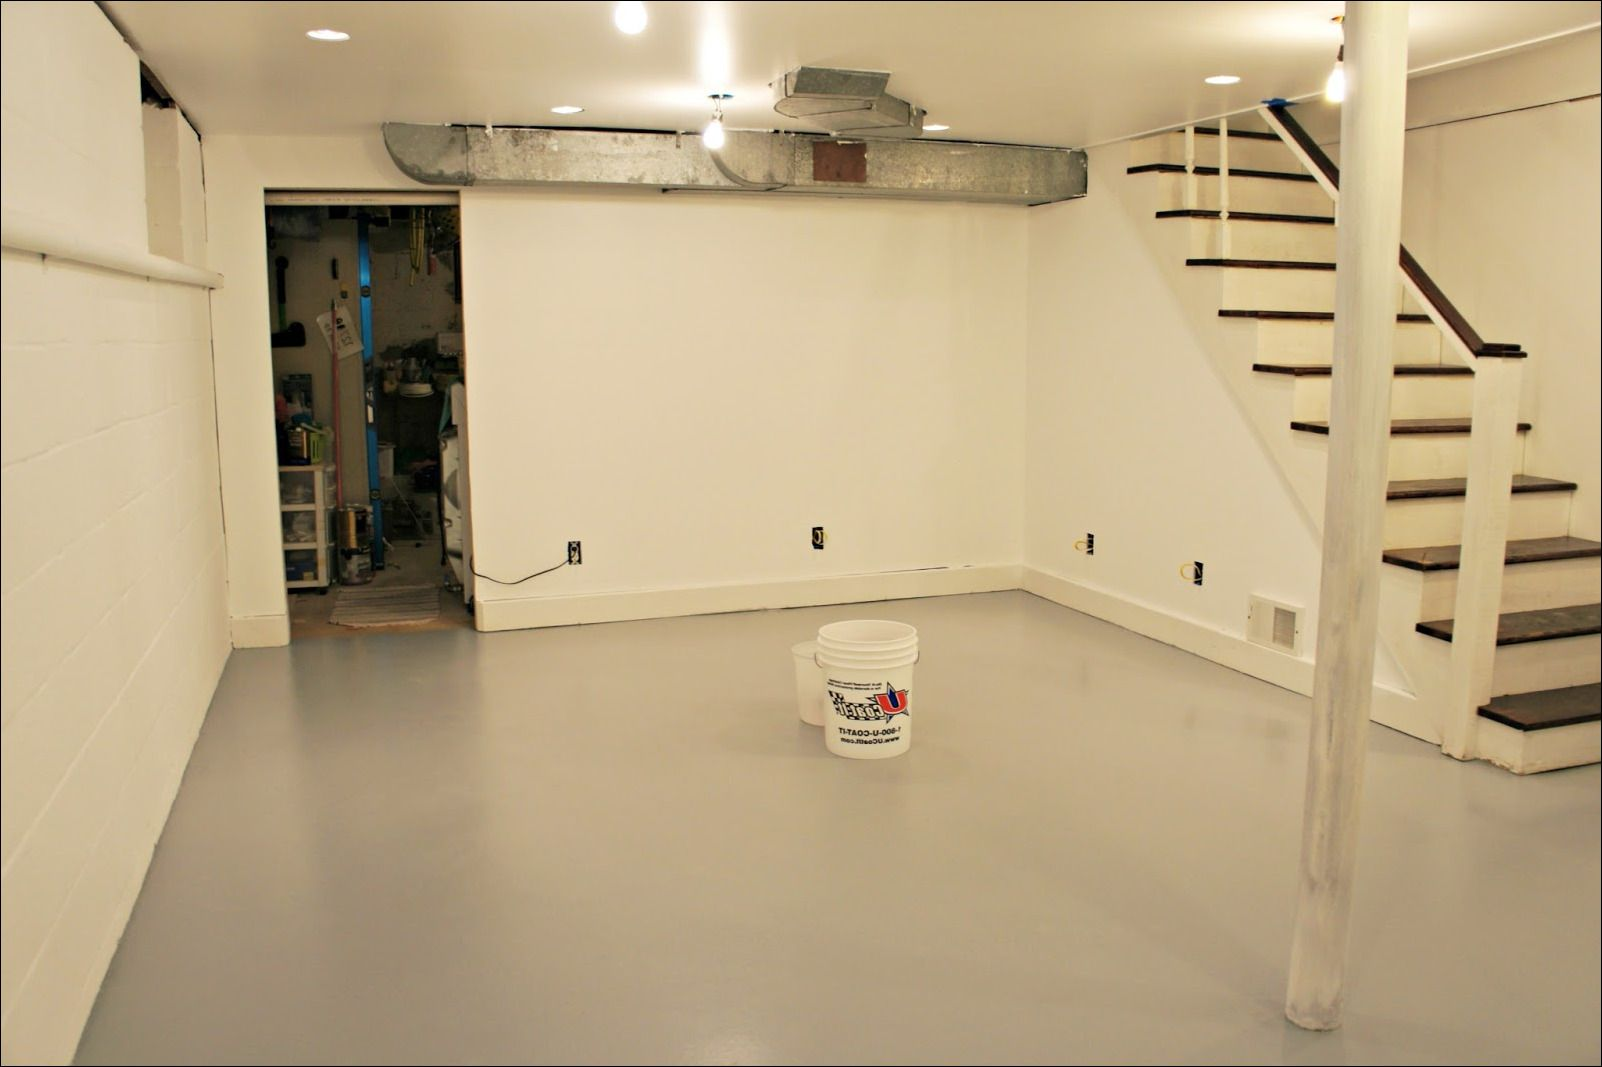 How To Level Basement Floor How To Level Basement Floor For Laminate Tile Around Drain With Wood A Vi Basement Flooring Concrete Basement Floors Cheap Flooring